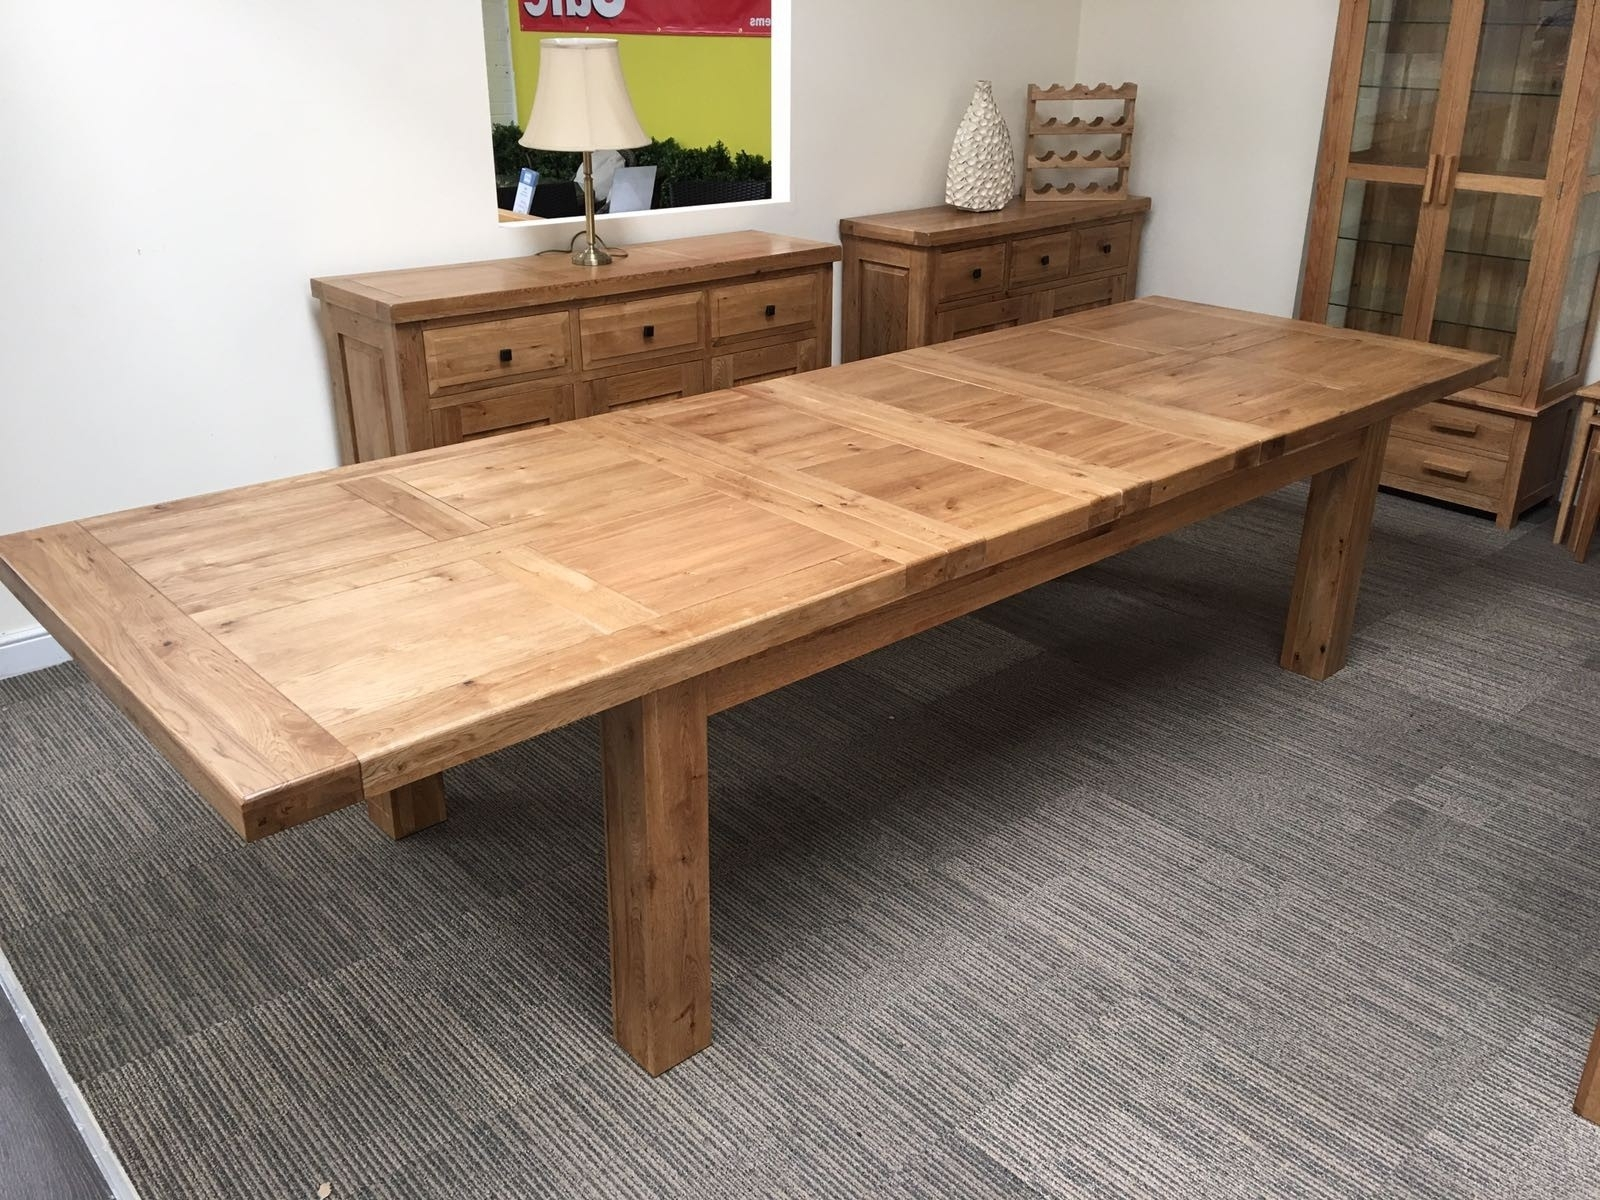 Oak Dining Furniture Regarding Most Recent Beautiful Oak Dining Table : Ugarelay – Ideas To Care Oak Dining Table (View 8 of 25)